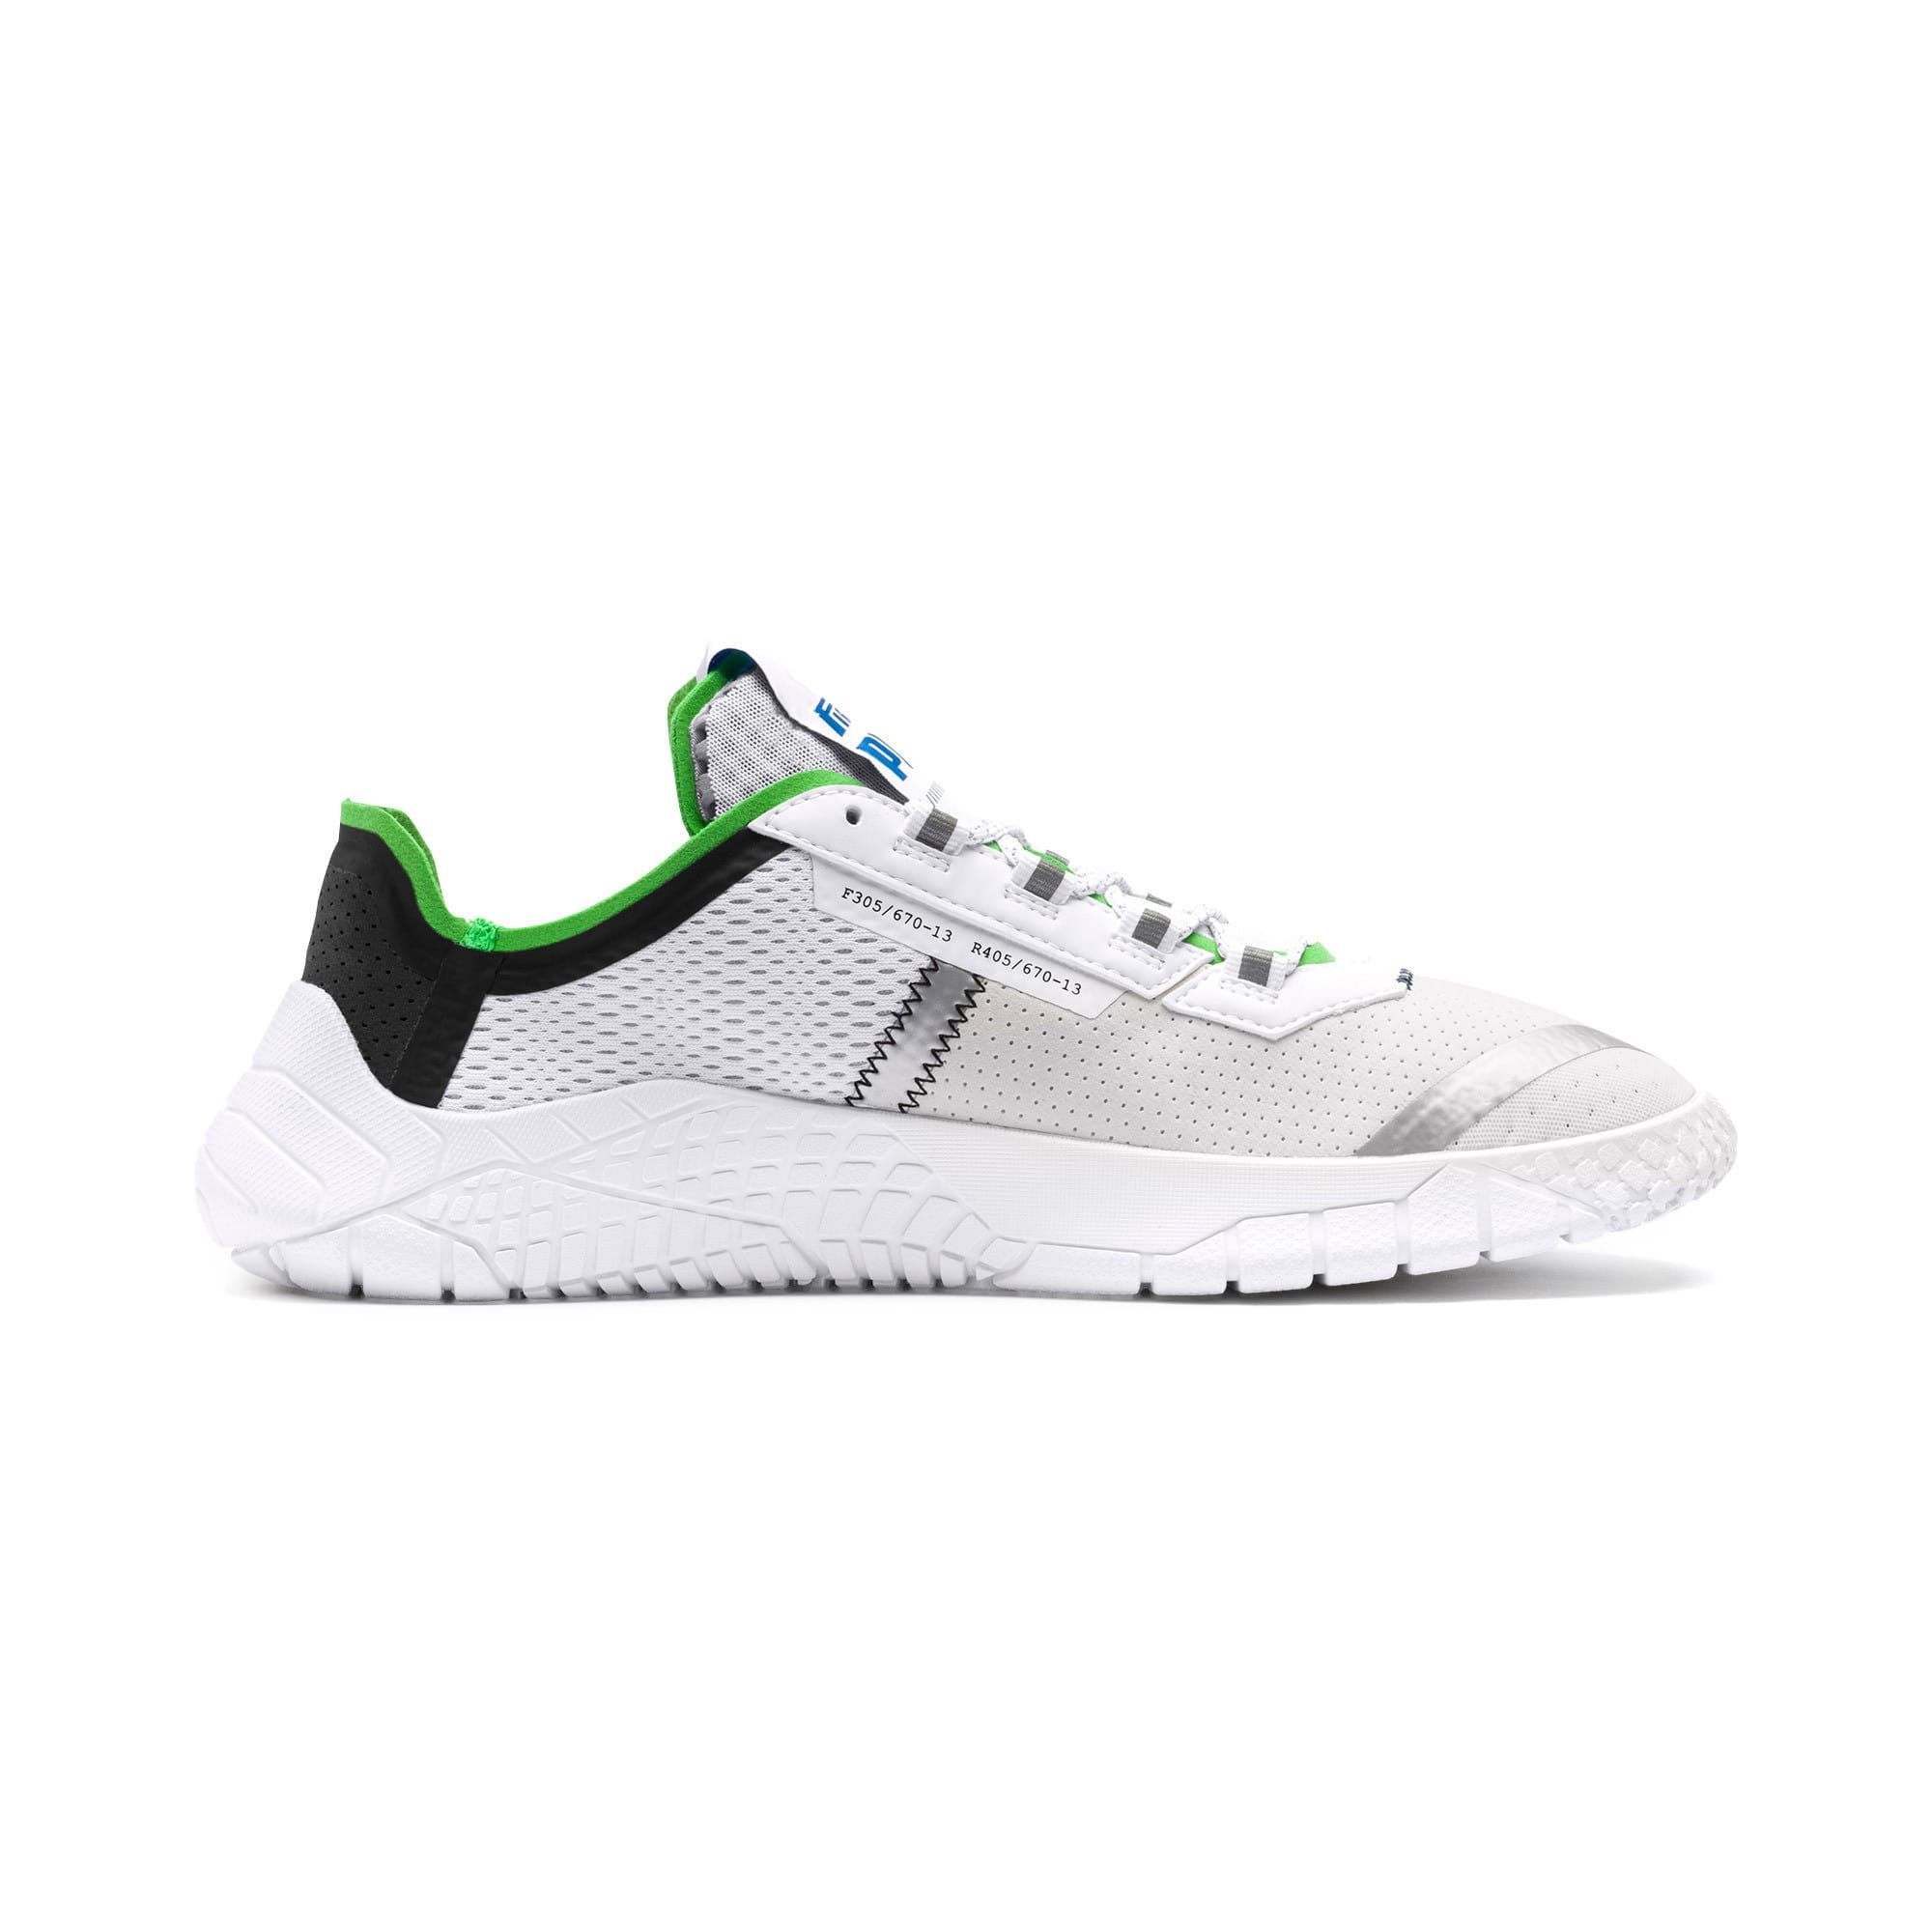 Photo of PUMA Pirelli Replicat-X Trainers,  White/Black/Classic Green, size 10.5, Shoes